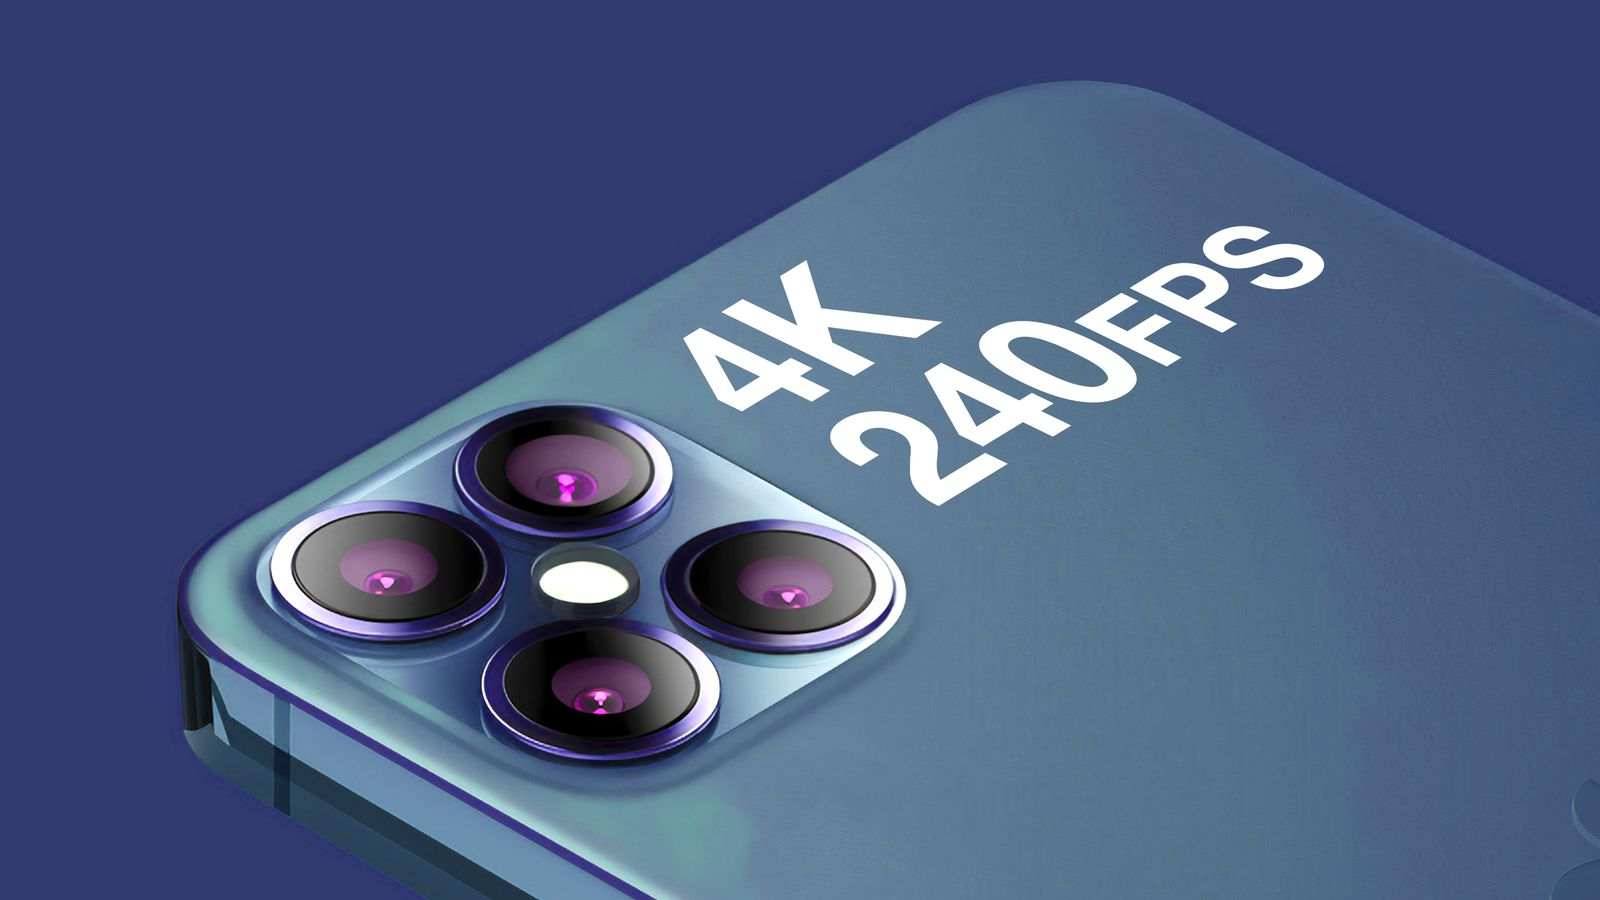 Iphone 12 Pro Models Could Be Capable Of Shooting 4k Video At 120fps And 240fps Macrumors